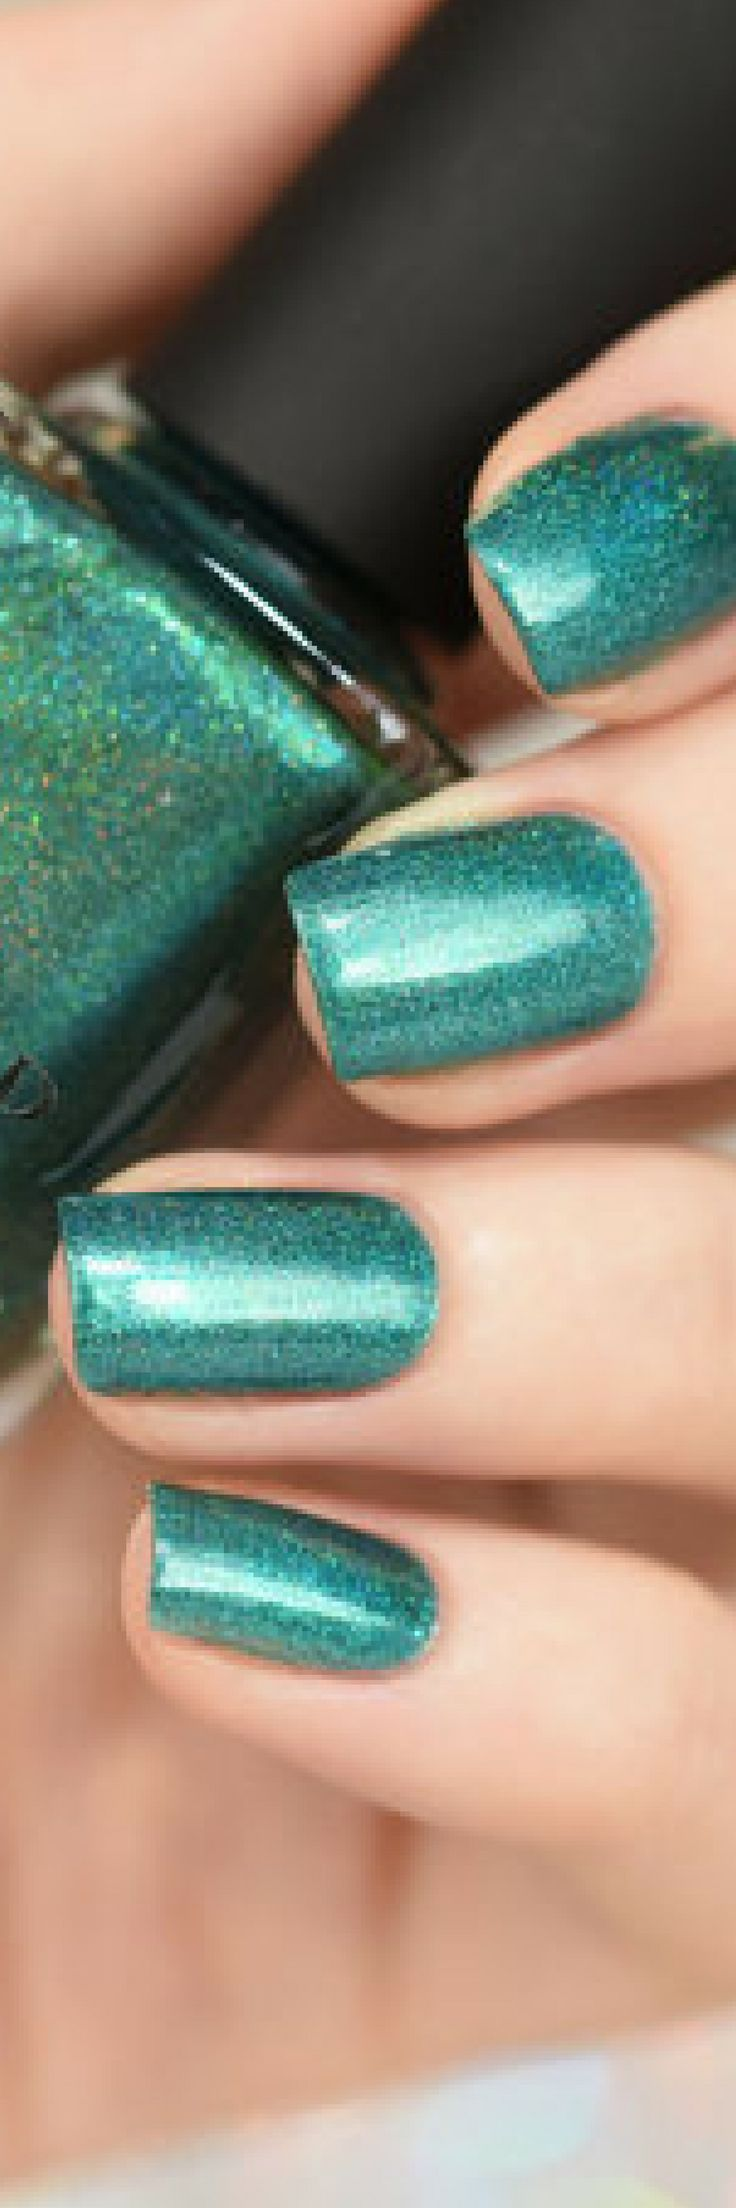 Super vibrant and luxuriously saturated, Rehab is definitely what you need!  Rehab is a gorgeous aqua-green holo and a perfect match for those long and relaxing summer days.   Wear it to the pool! Wear it to the beach!   Or…  If you're like most of us, wear it to work and use your imagination :)#naildesign #nailart #ad #winternails #glitternails